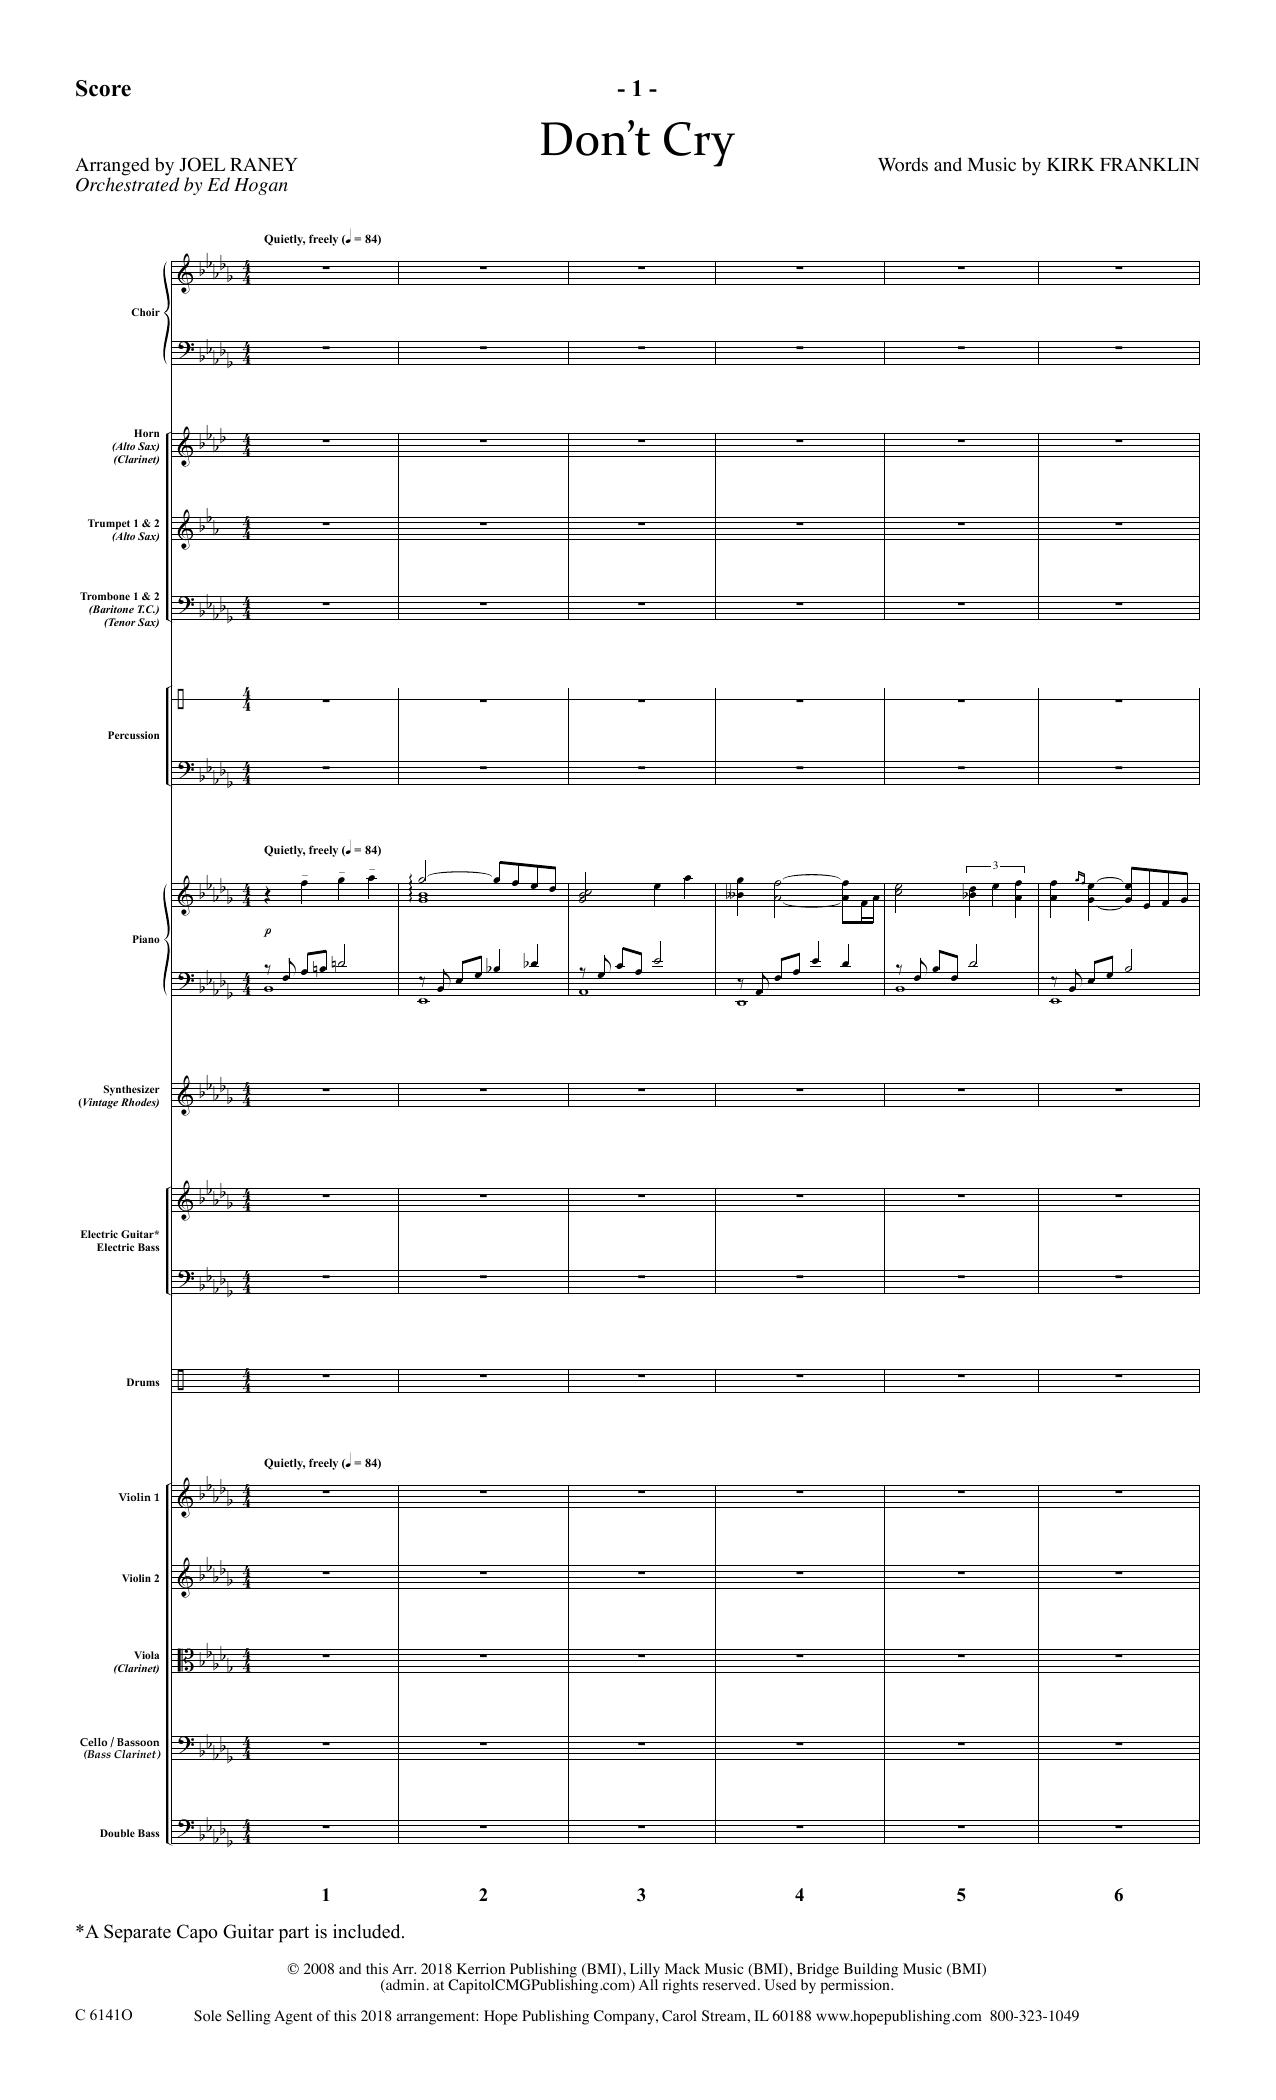 Joel Raney Don't Cry - Full Score sheet music notes and chords. Download Printable PDF.